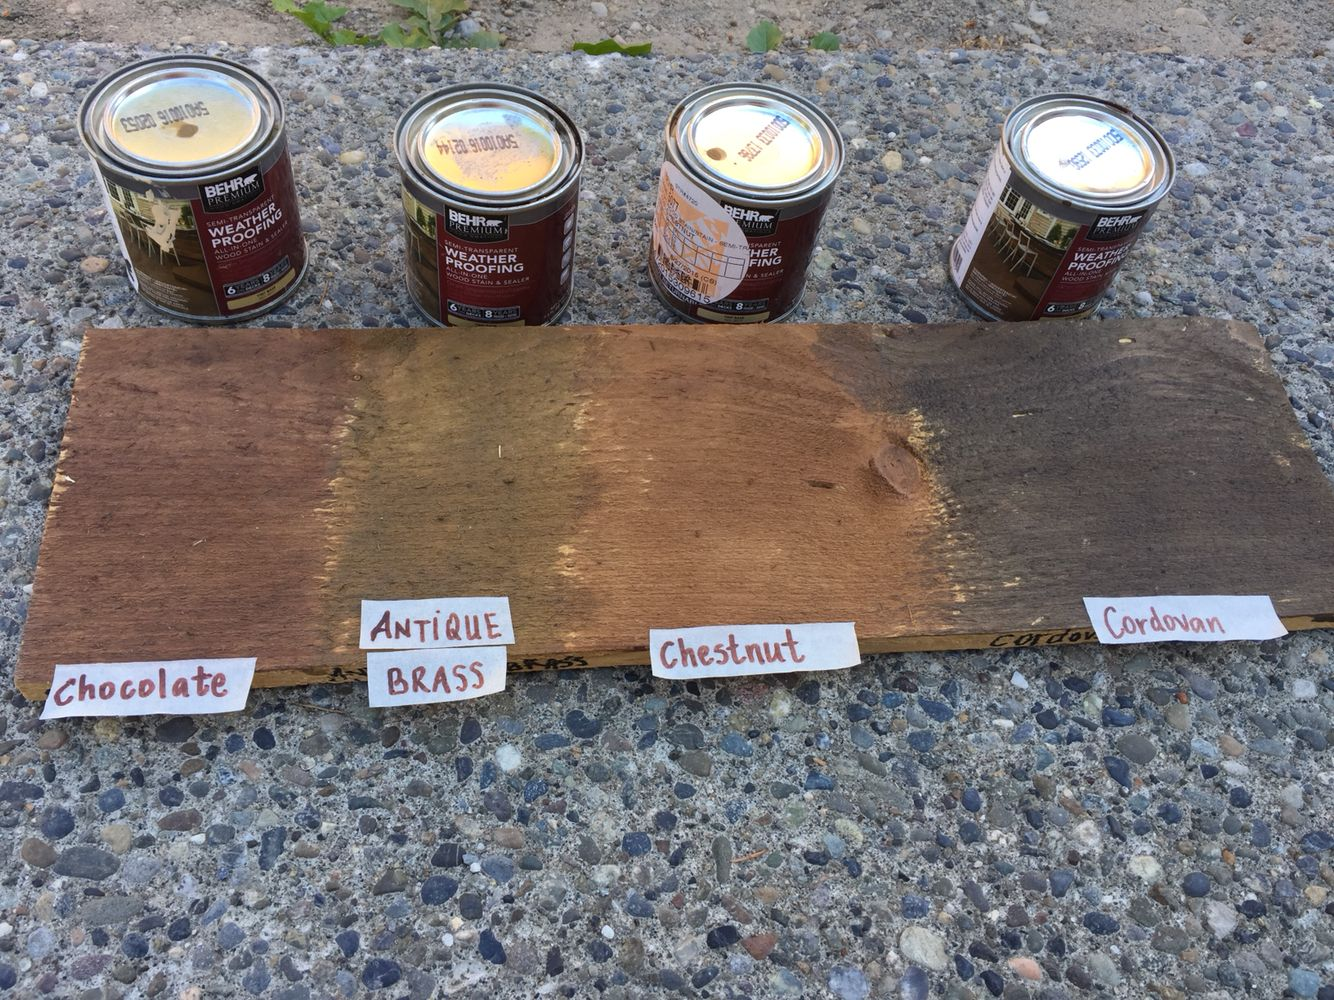 Minwax gel stain colors home depot wood stains color chart car tuning - Behr Wood Stain Fence Chocolate Cordova Brown Chestnut And Antique Brass Colors